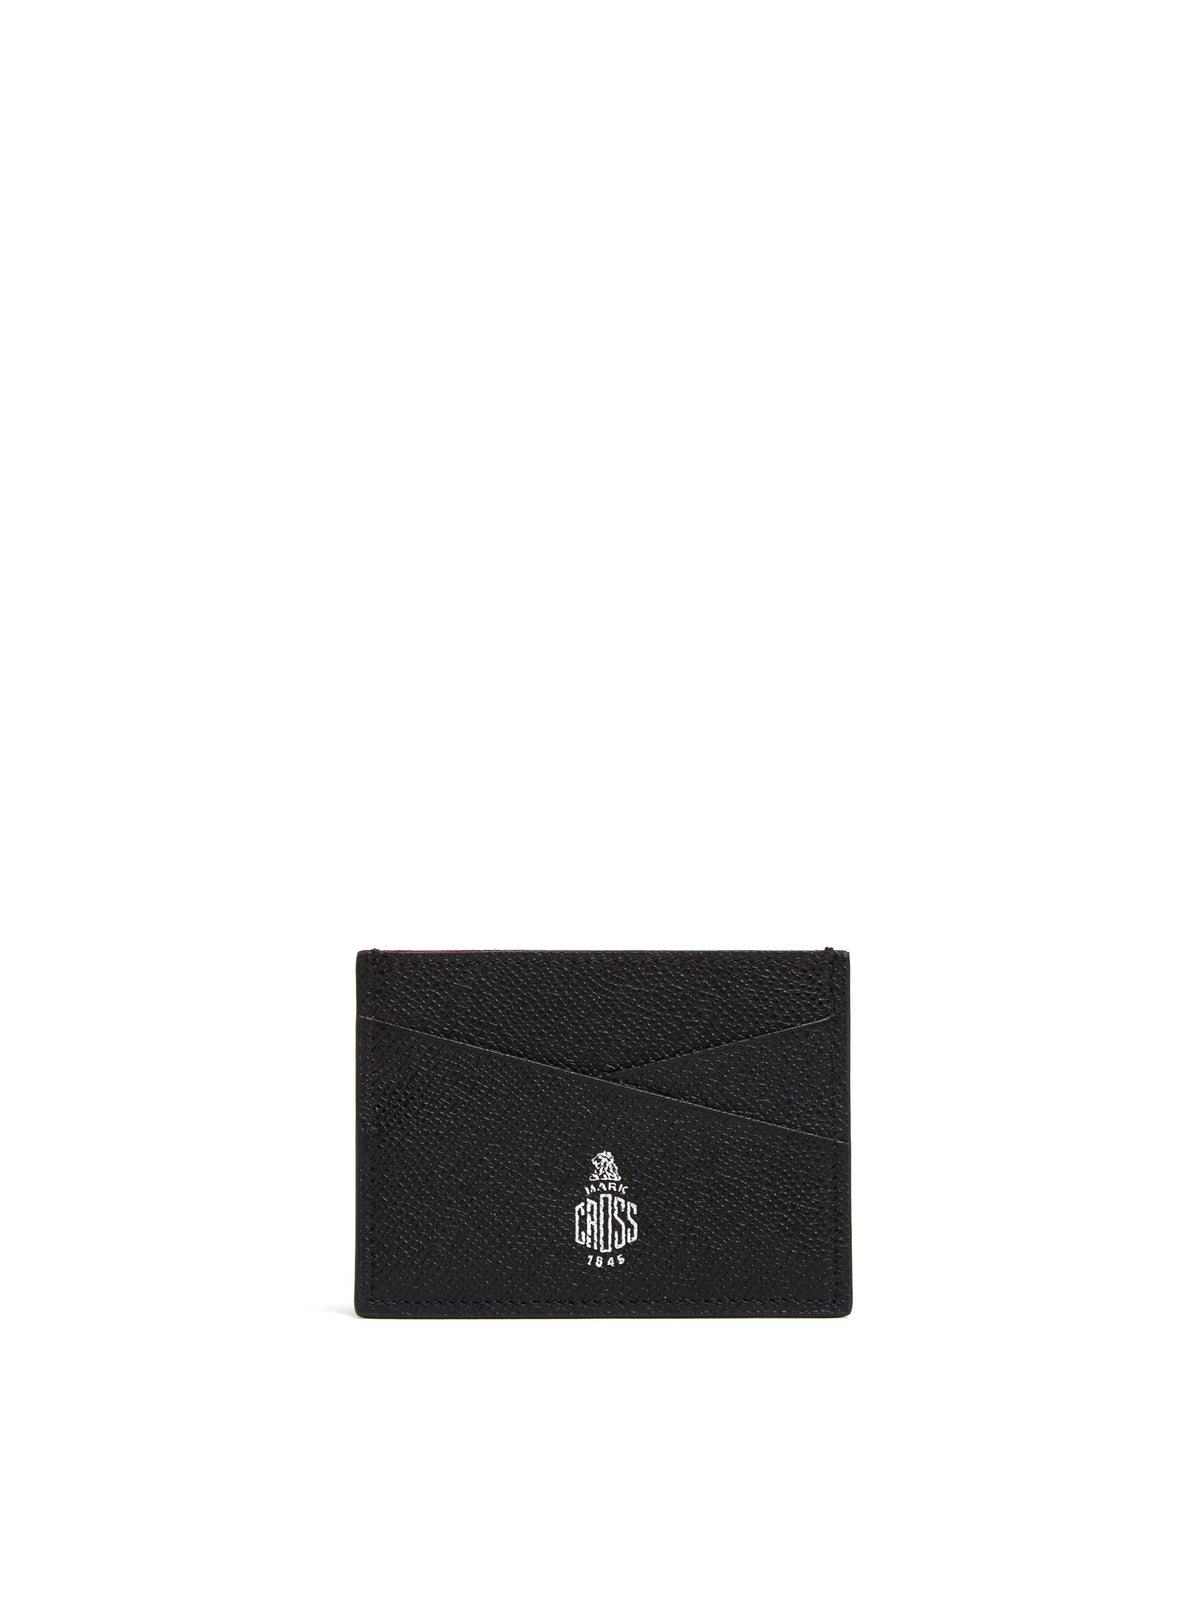 Mark Cross Leather Card Case Saffiano Black Front